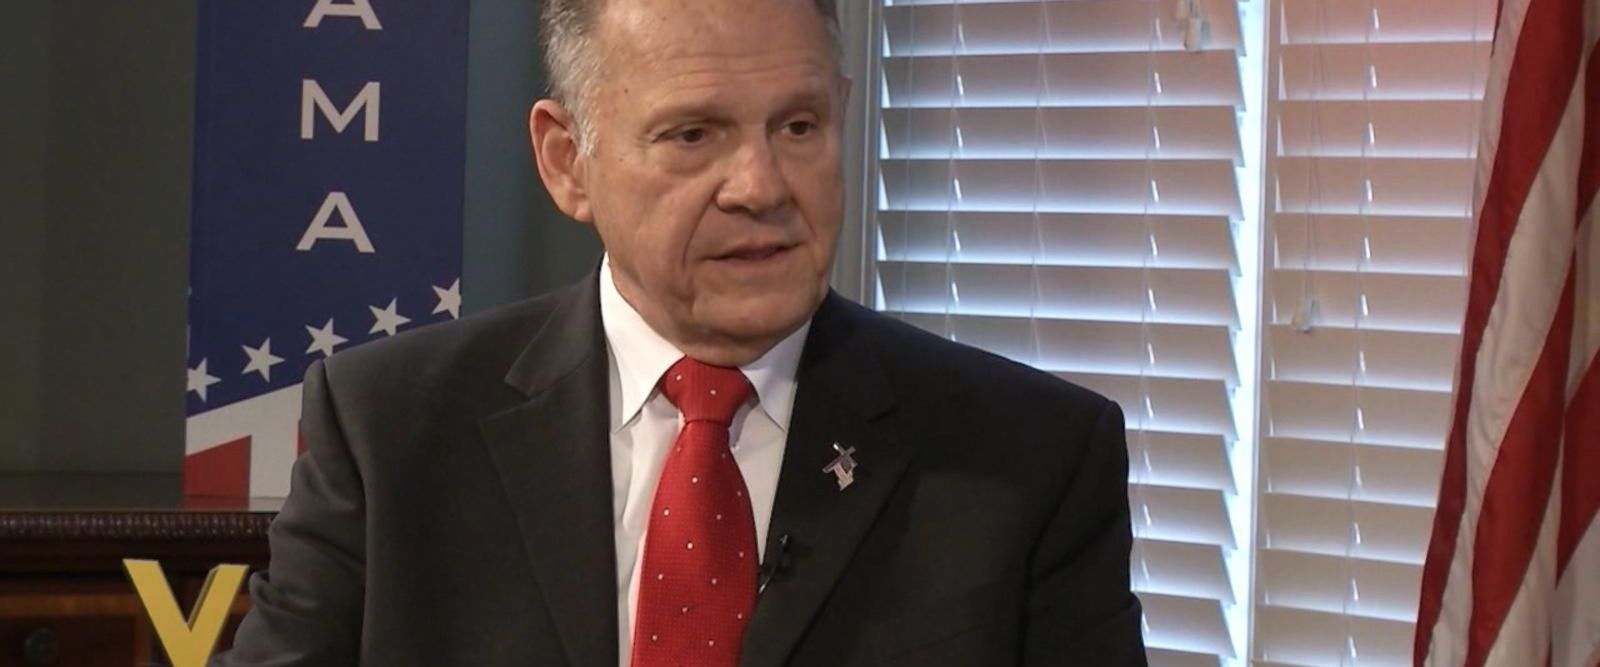 VIDEO: Moore denies allegations in new TV interview